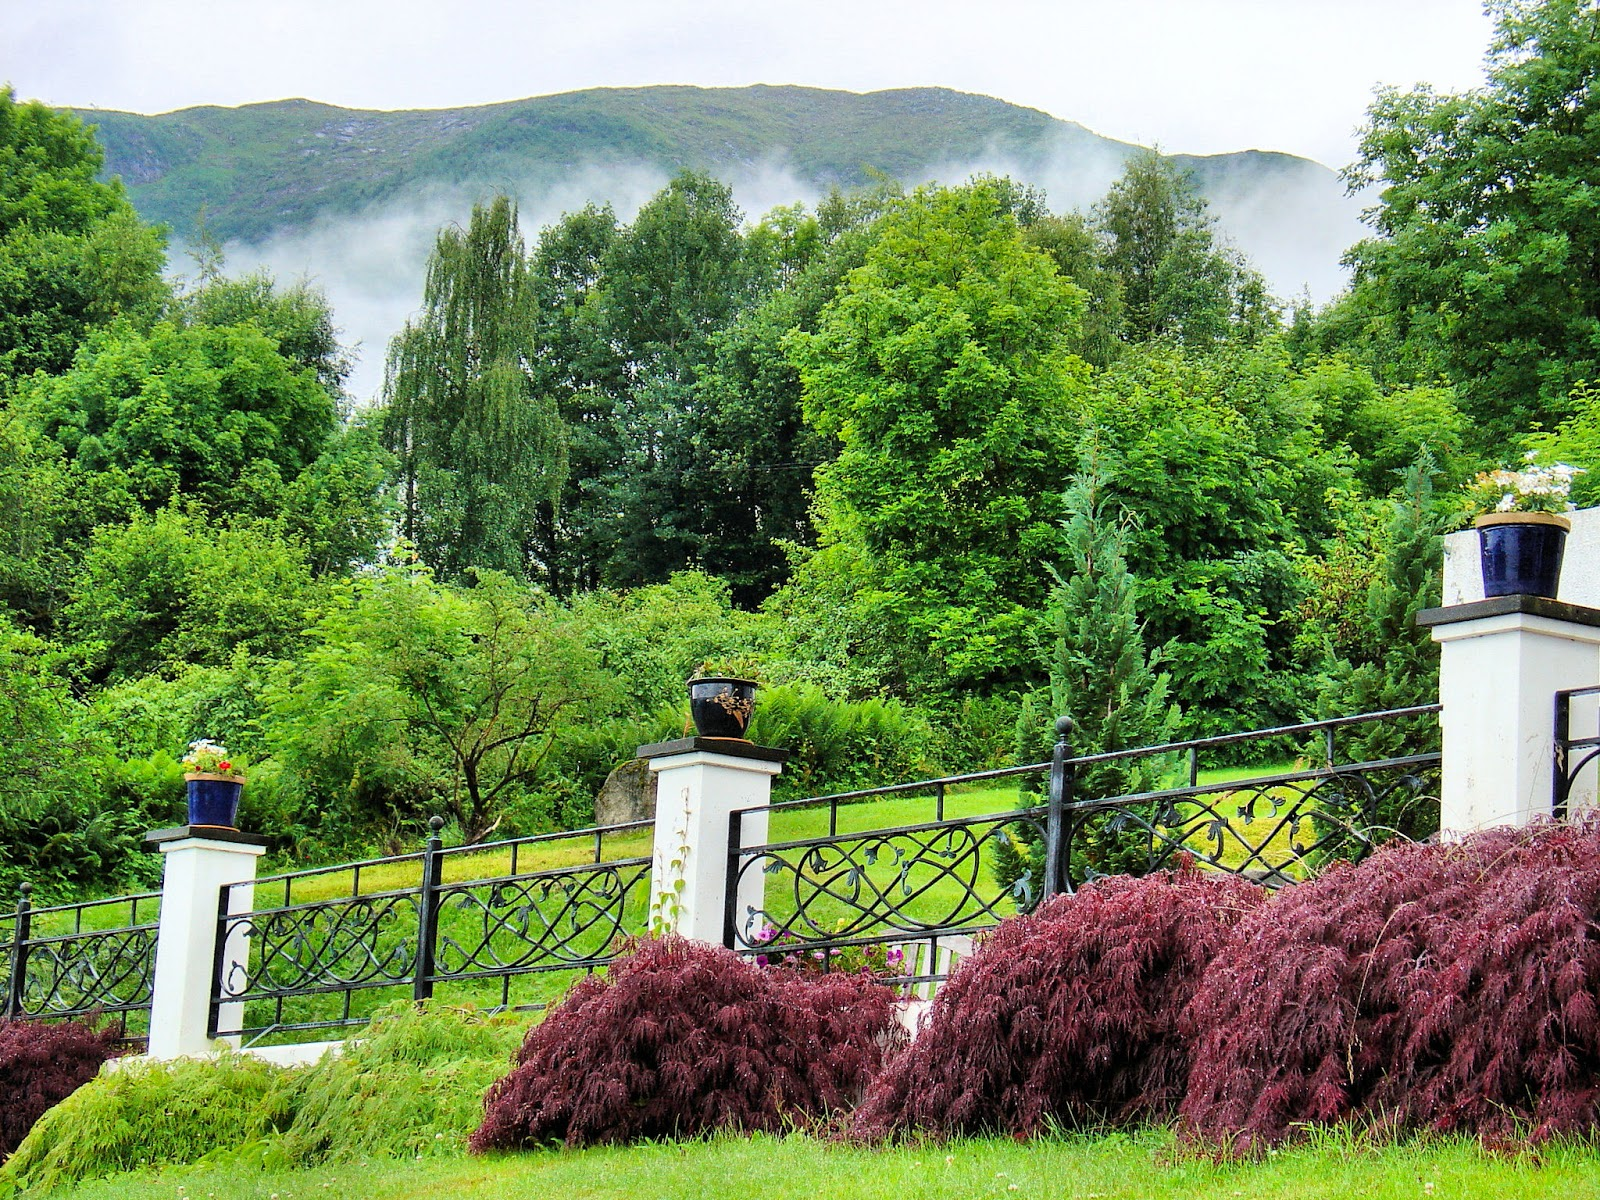 Exquisite gardens can be found throughout Balestrand.